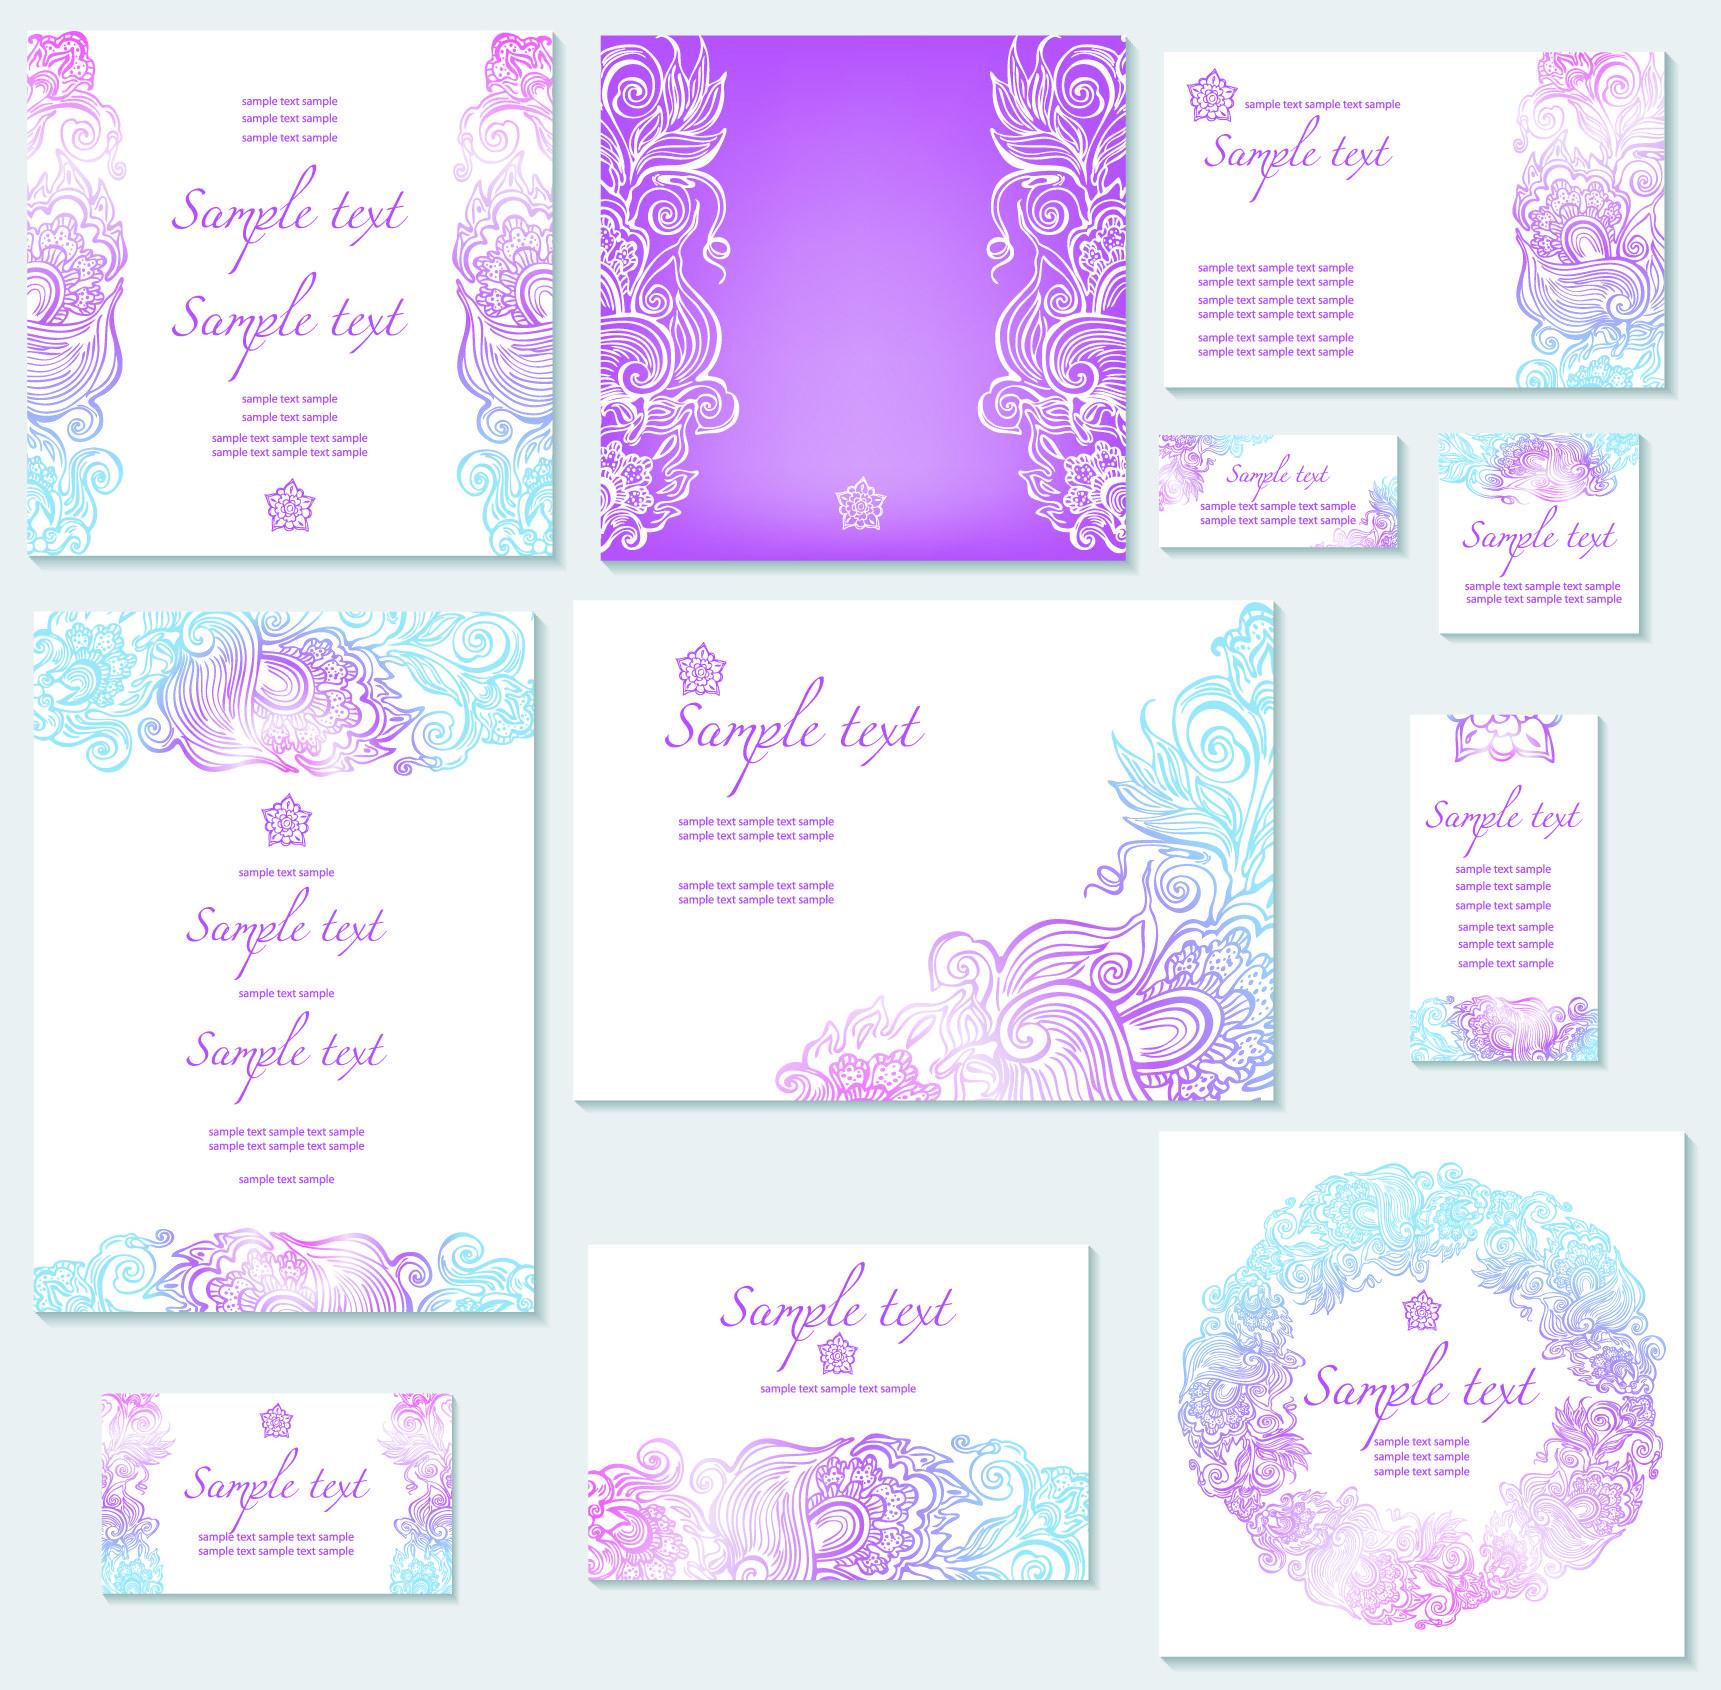 Wedding invitations templates template of wedding invitation free set of vector template of wedding invitation olorful template for wedding invitation cards with different ornaments ornate borders frames stopboris Gallery